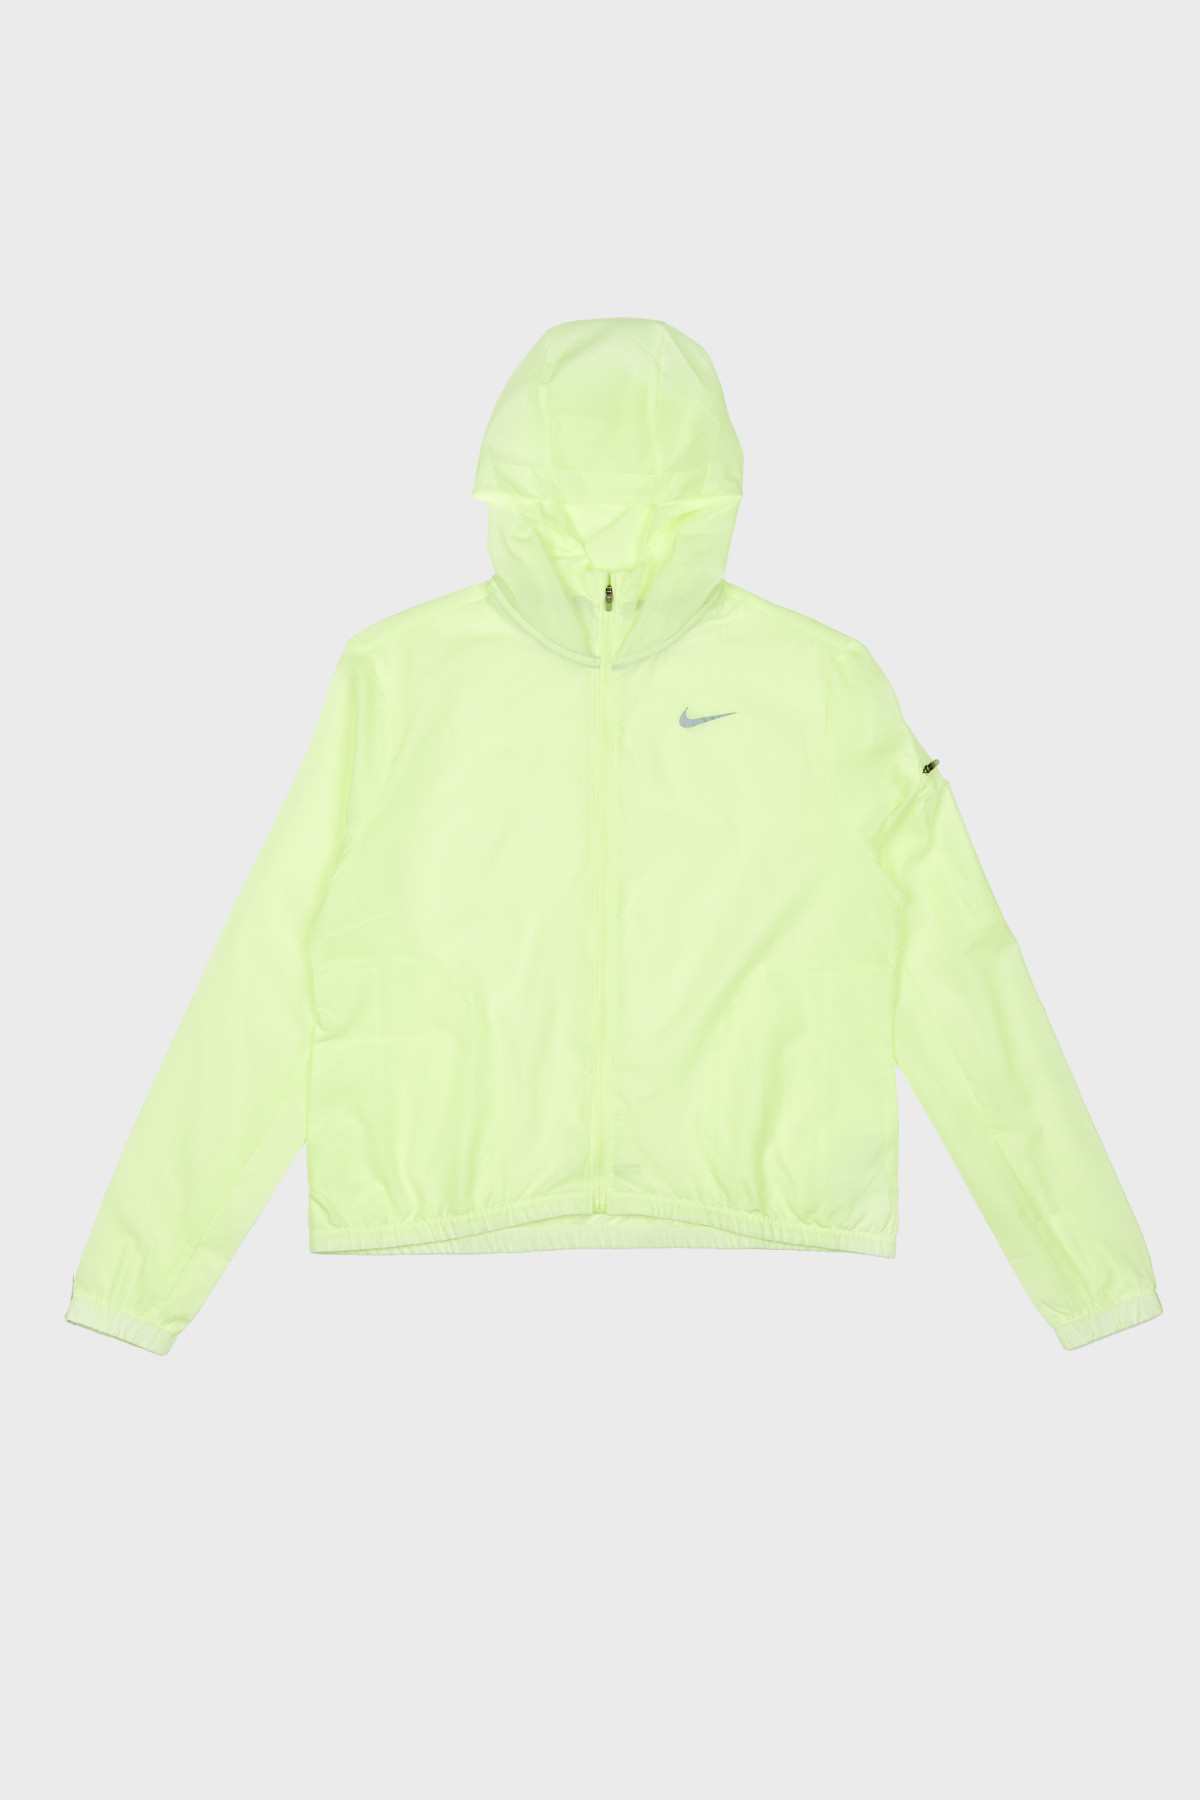 NIKE - W WINDRUNNER JACKET - ELECTRIC VOLT